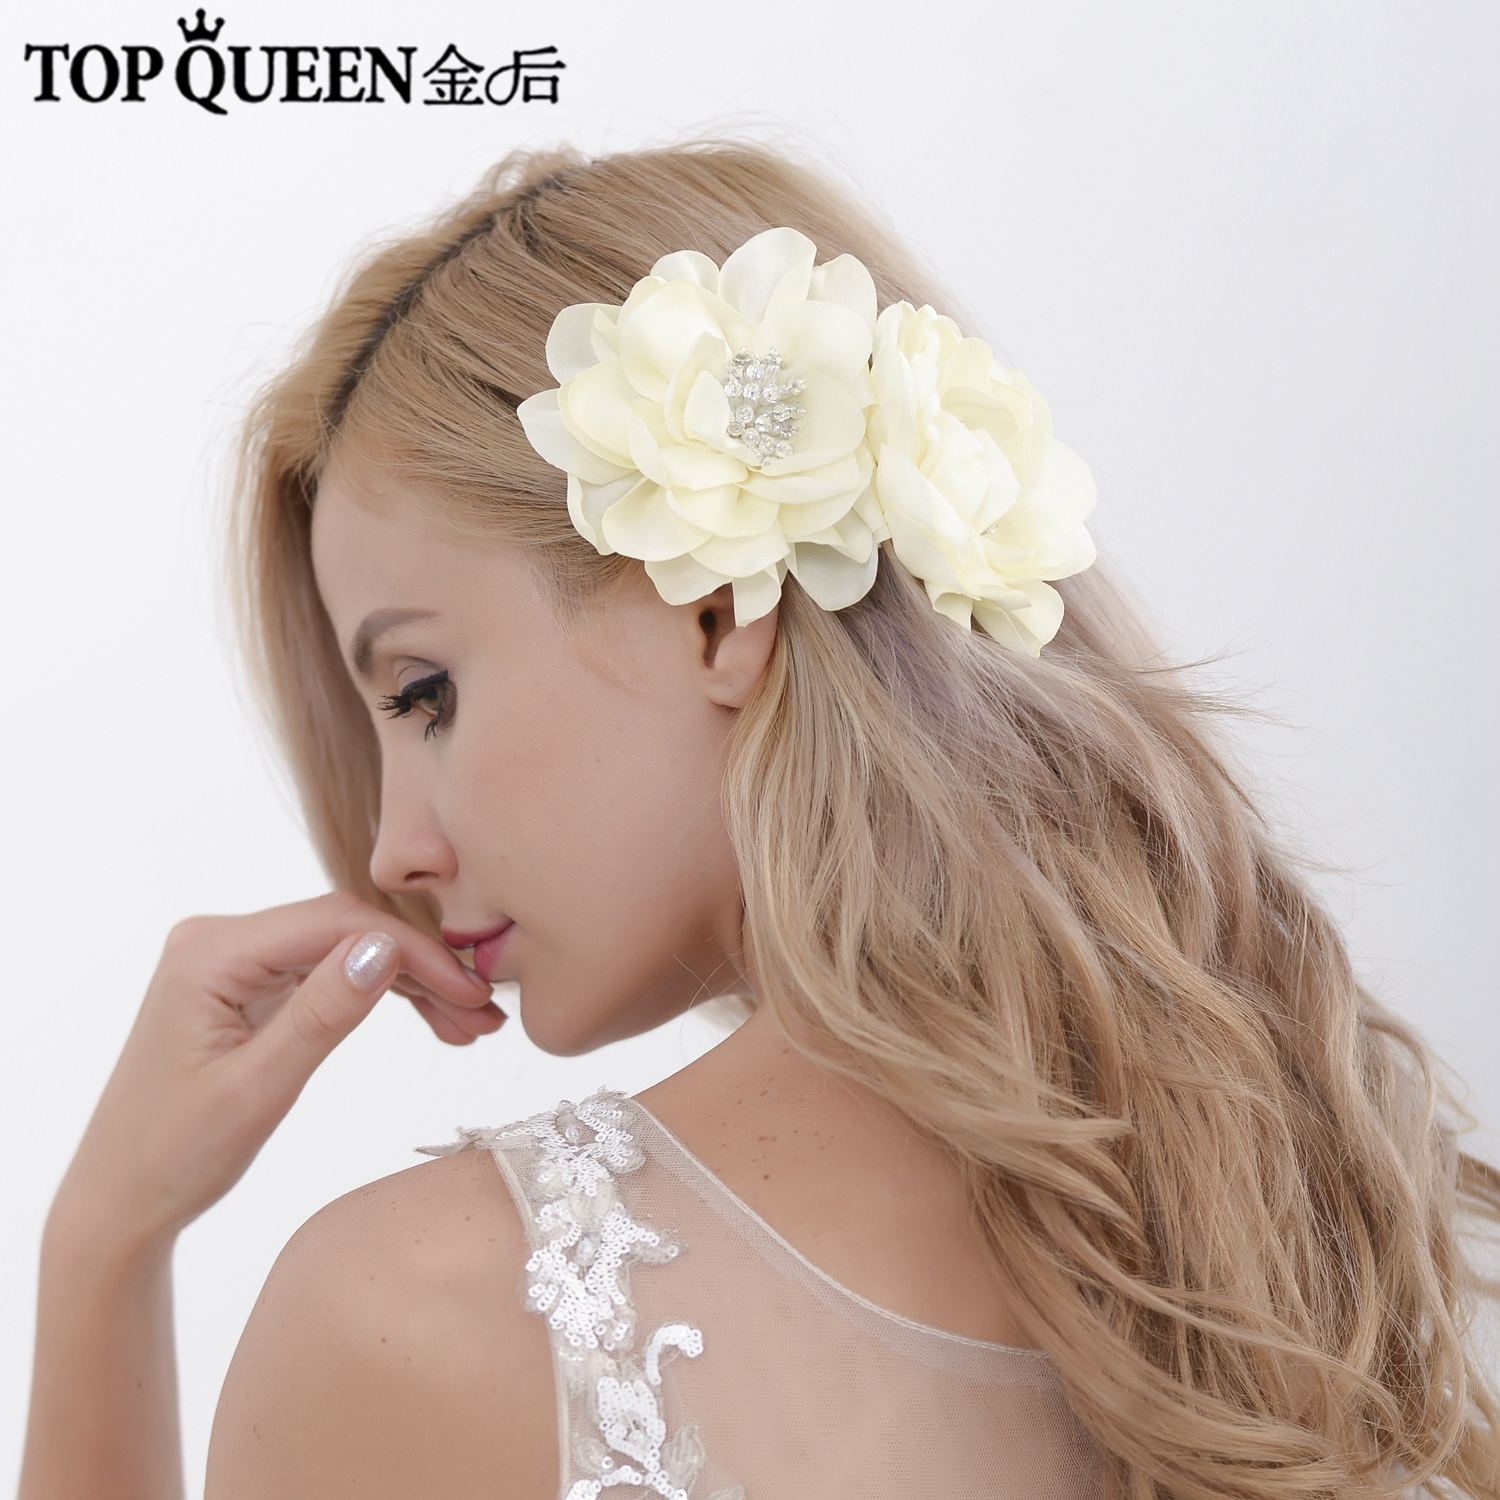 TOPQUEEN HP50-D Bride Headdress Wedding Comb For The Bride Wedding Accessories Decoration With Organza Flower Hair Comb Wedding